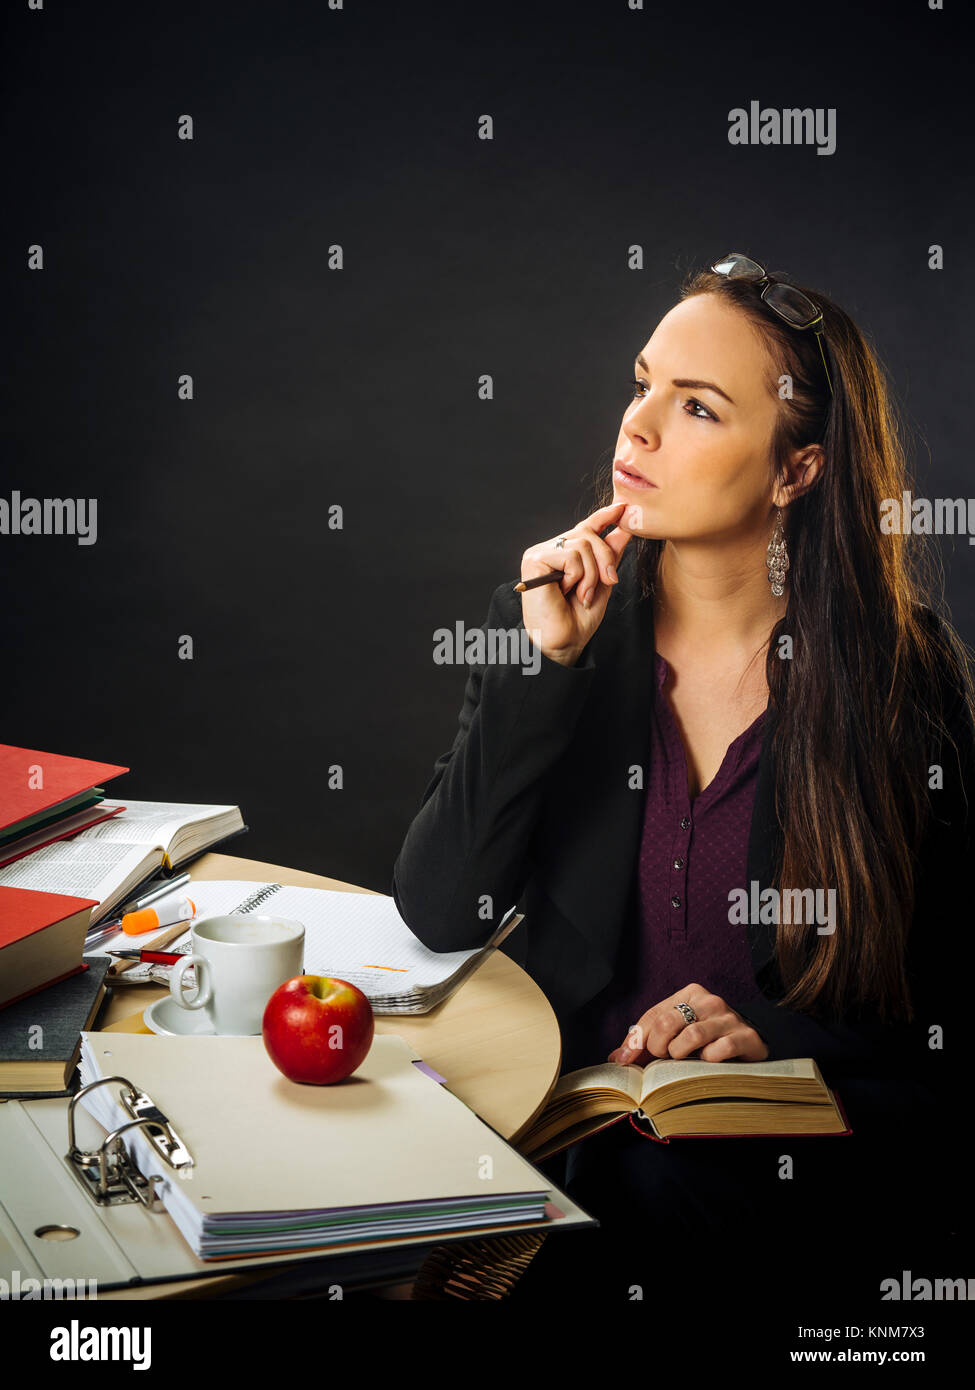 Photo of a teacher in her 30's sitting at a messy desk in front of a large blackboard reading a book. - Stock Image